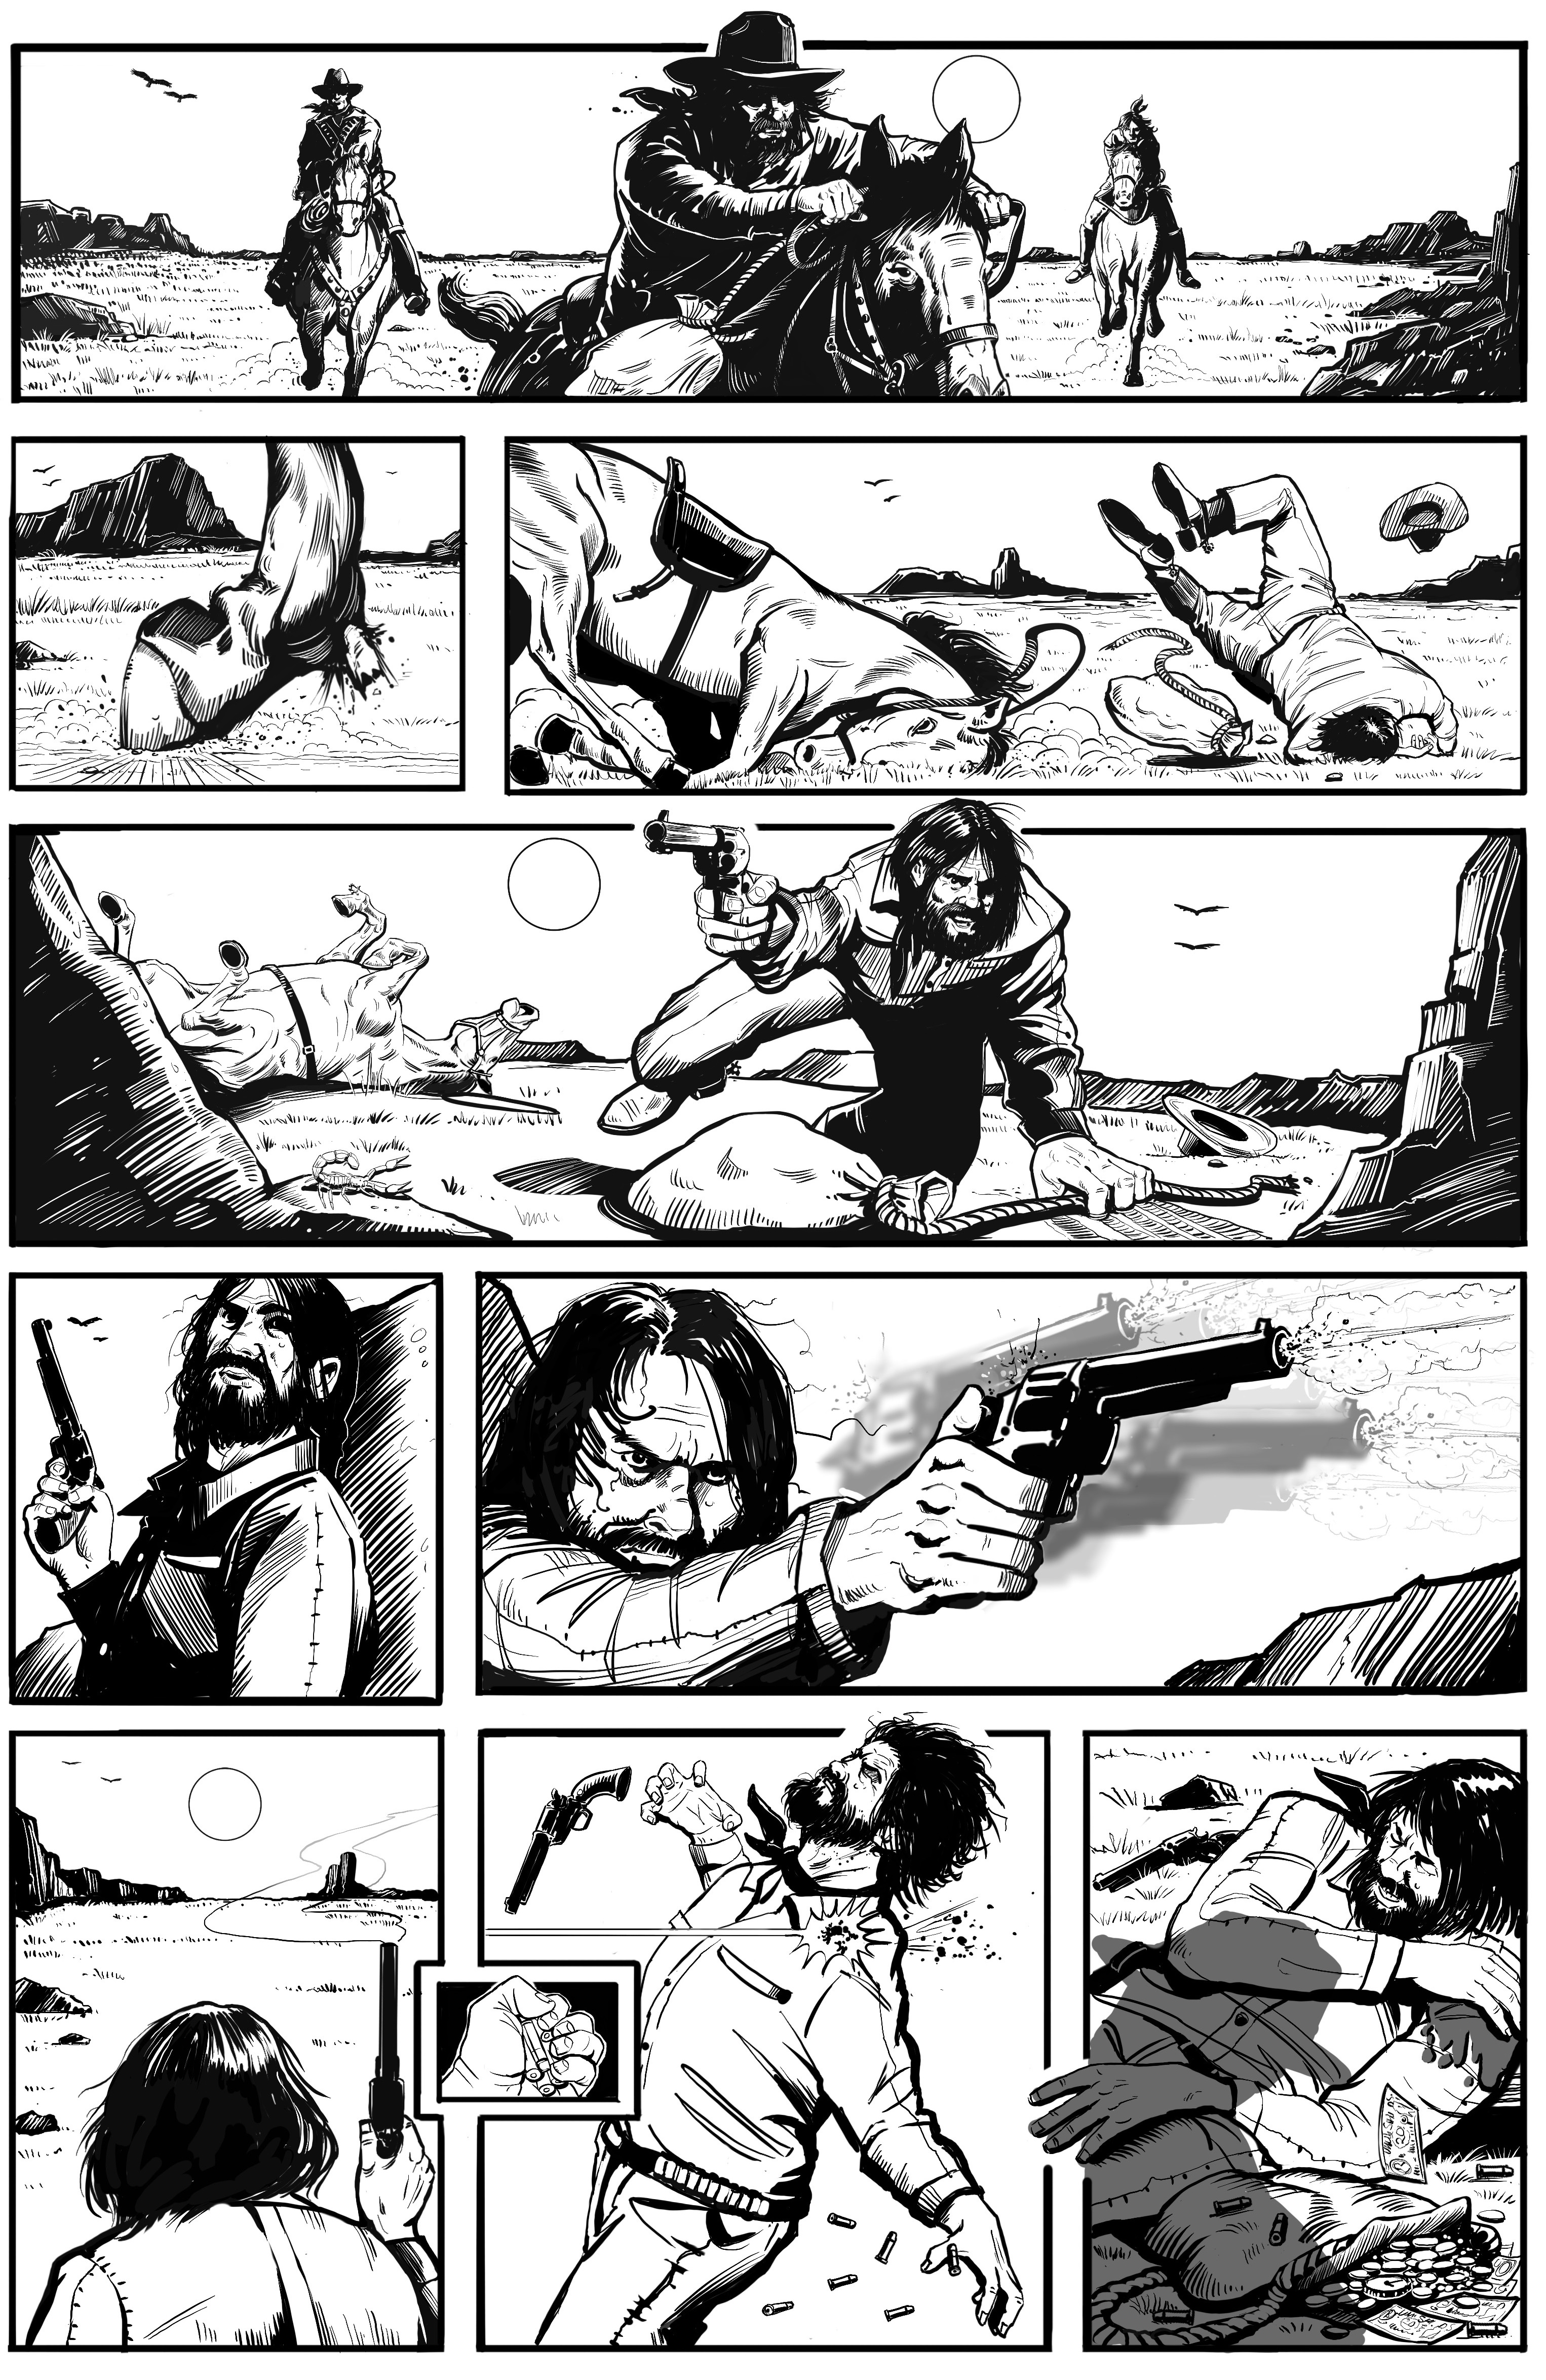 THE LONE RANGER PAGE 6